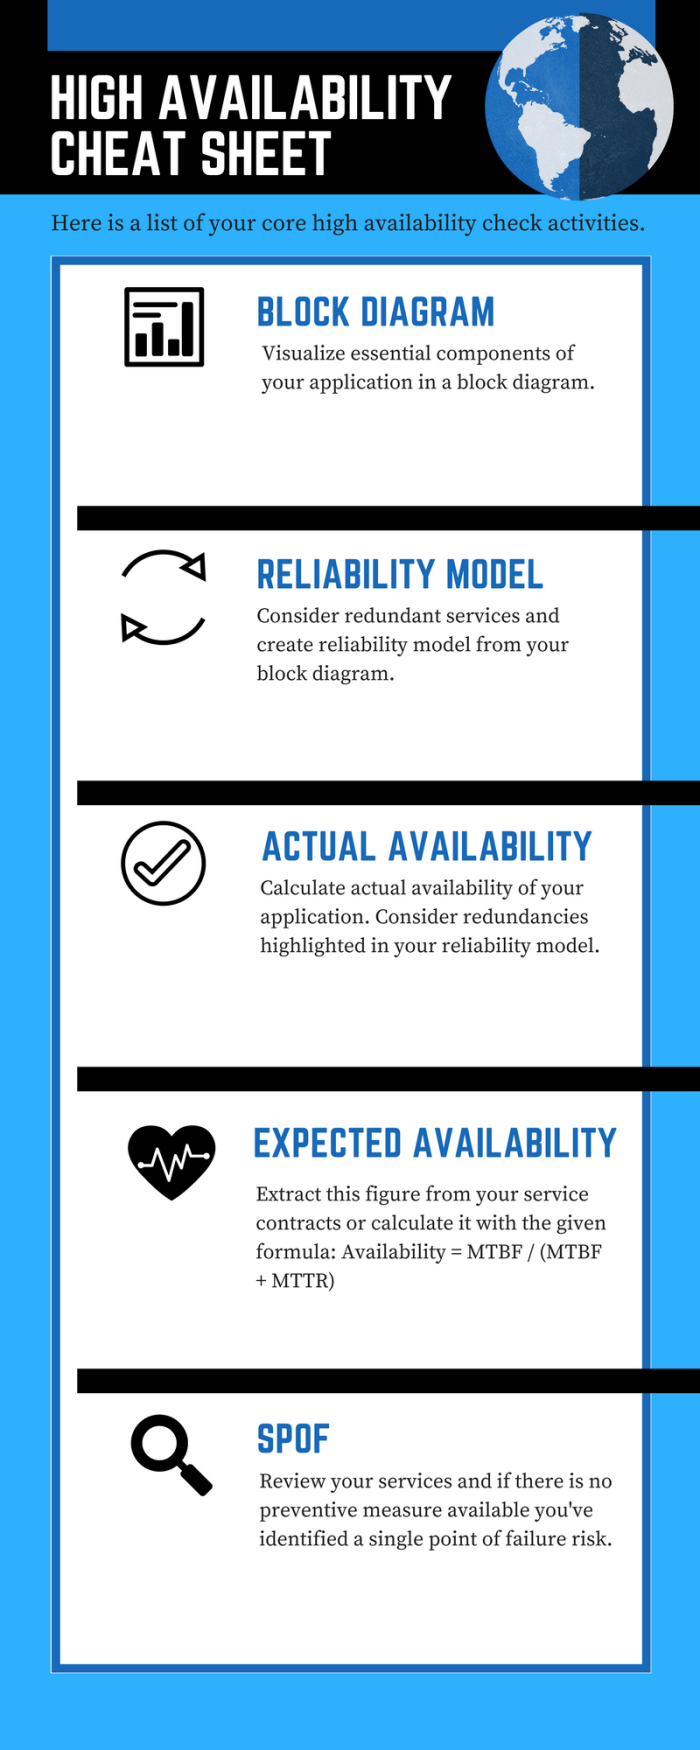 High Availability Cheat Sheet